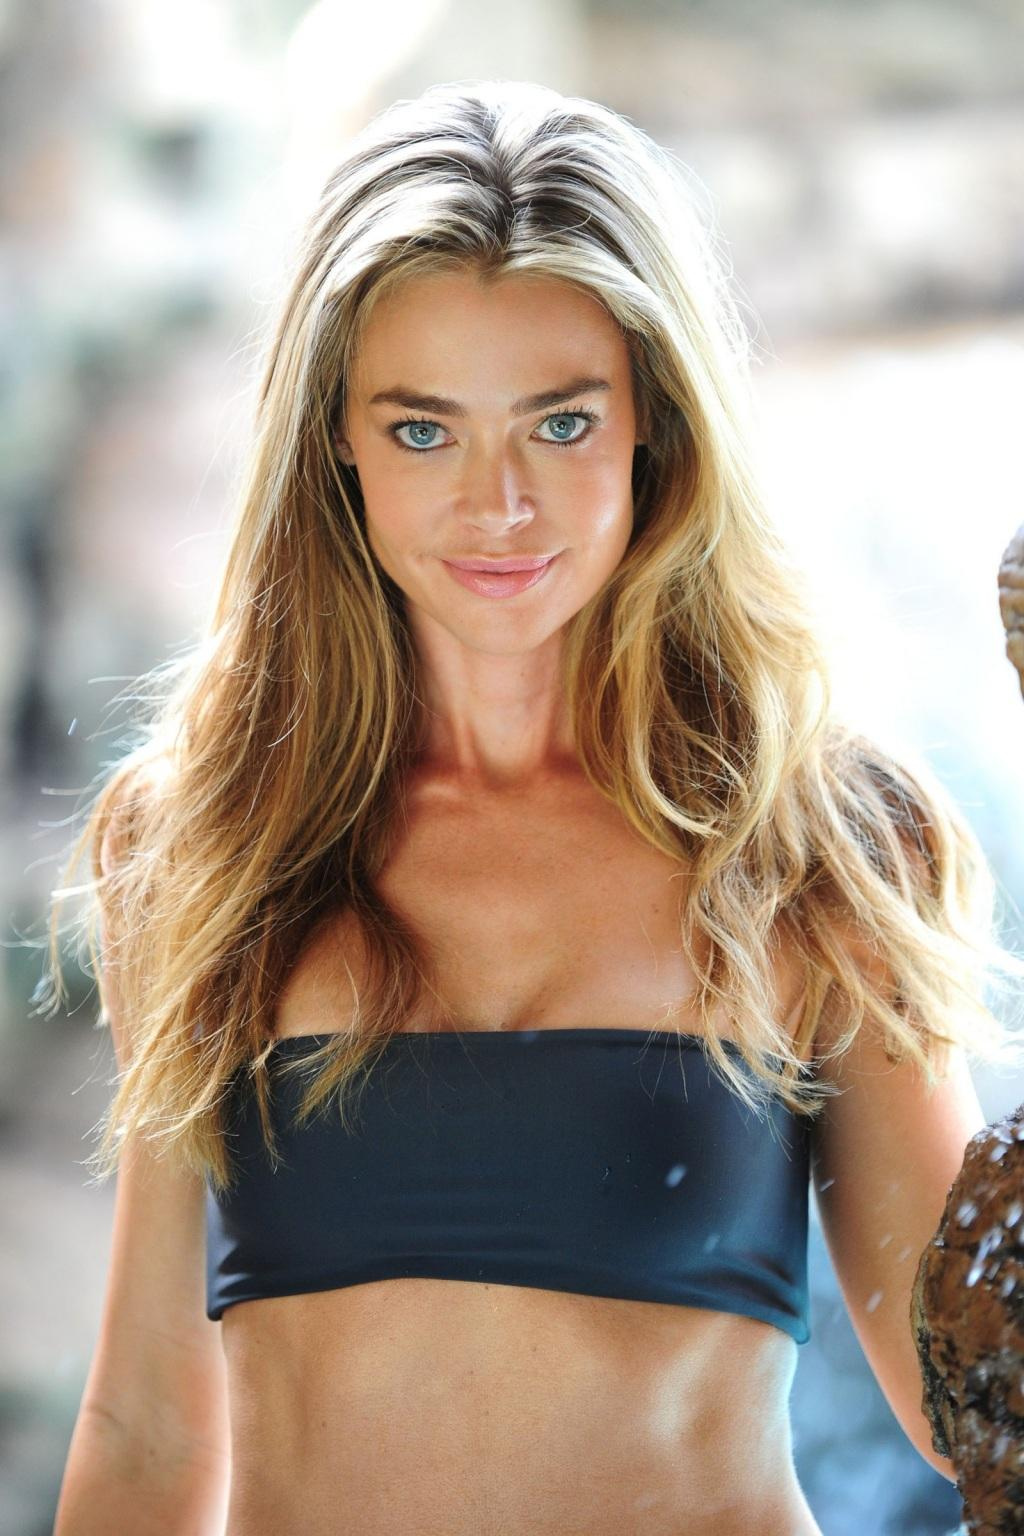 denise-richards-topless-wallpapers